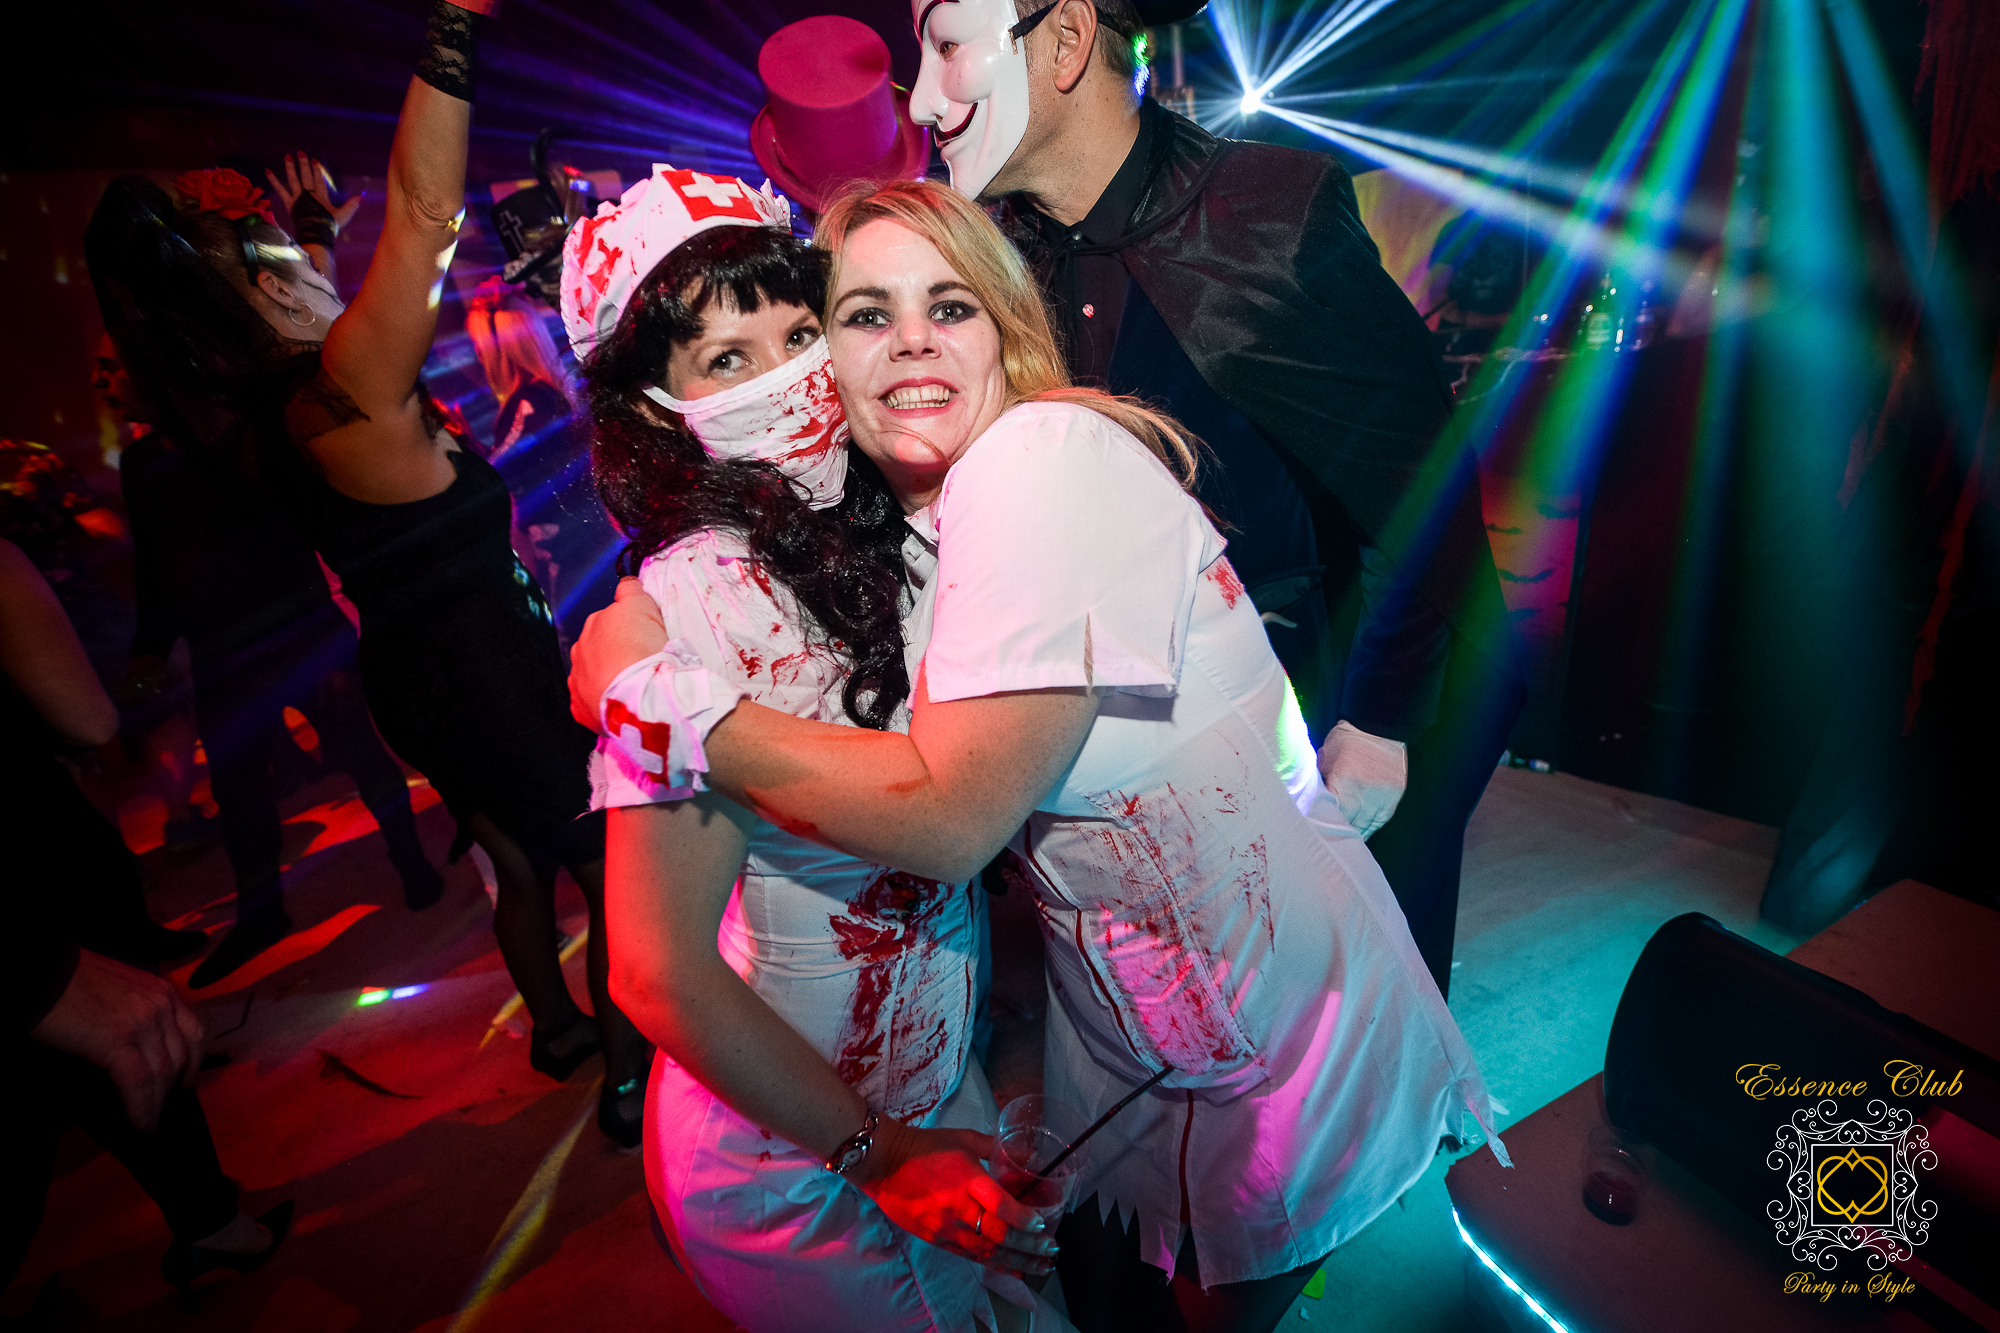 Halloween event at essence club